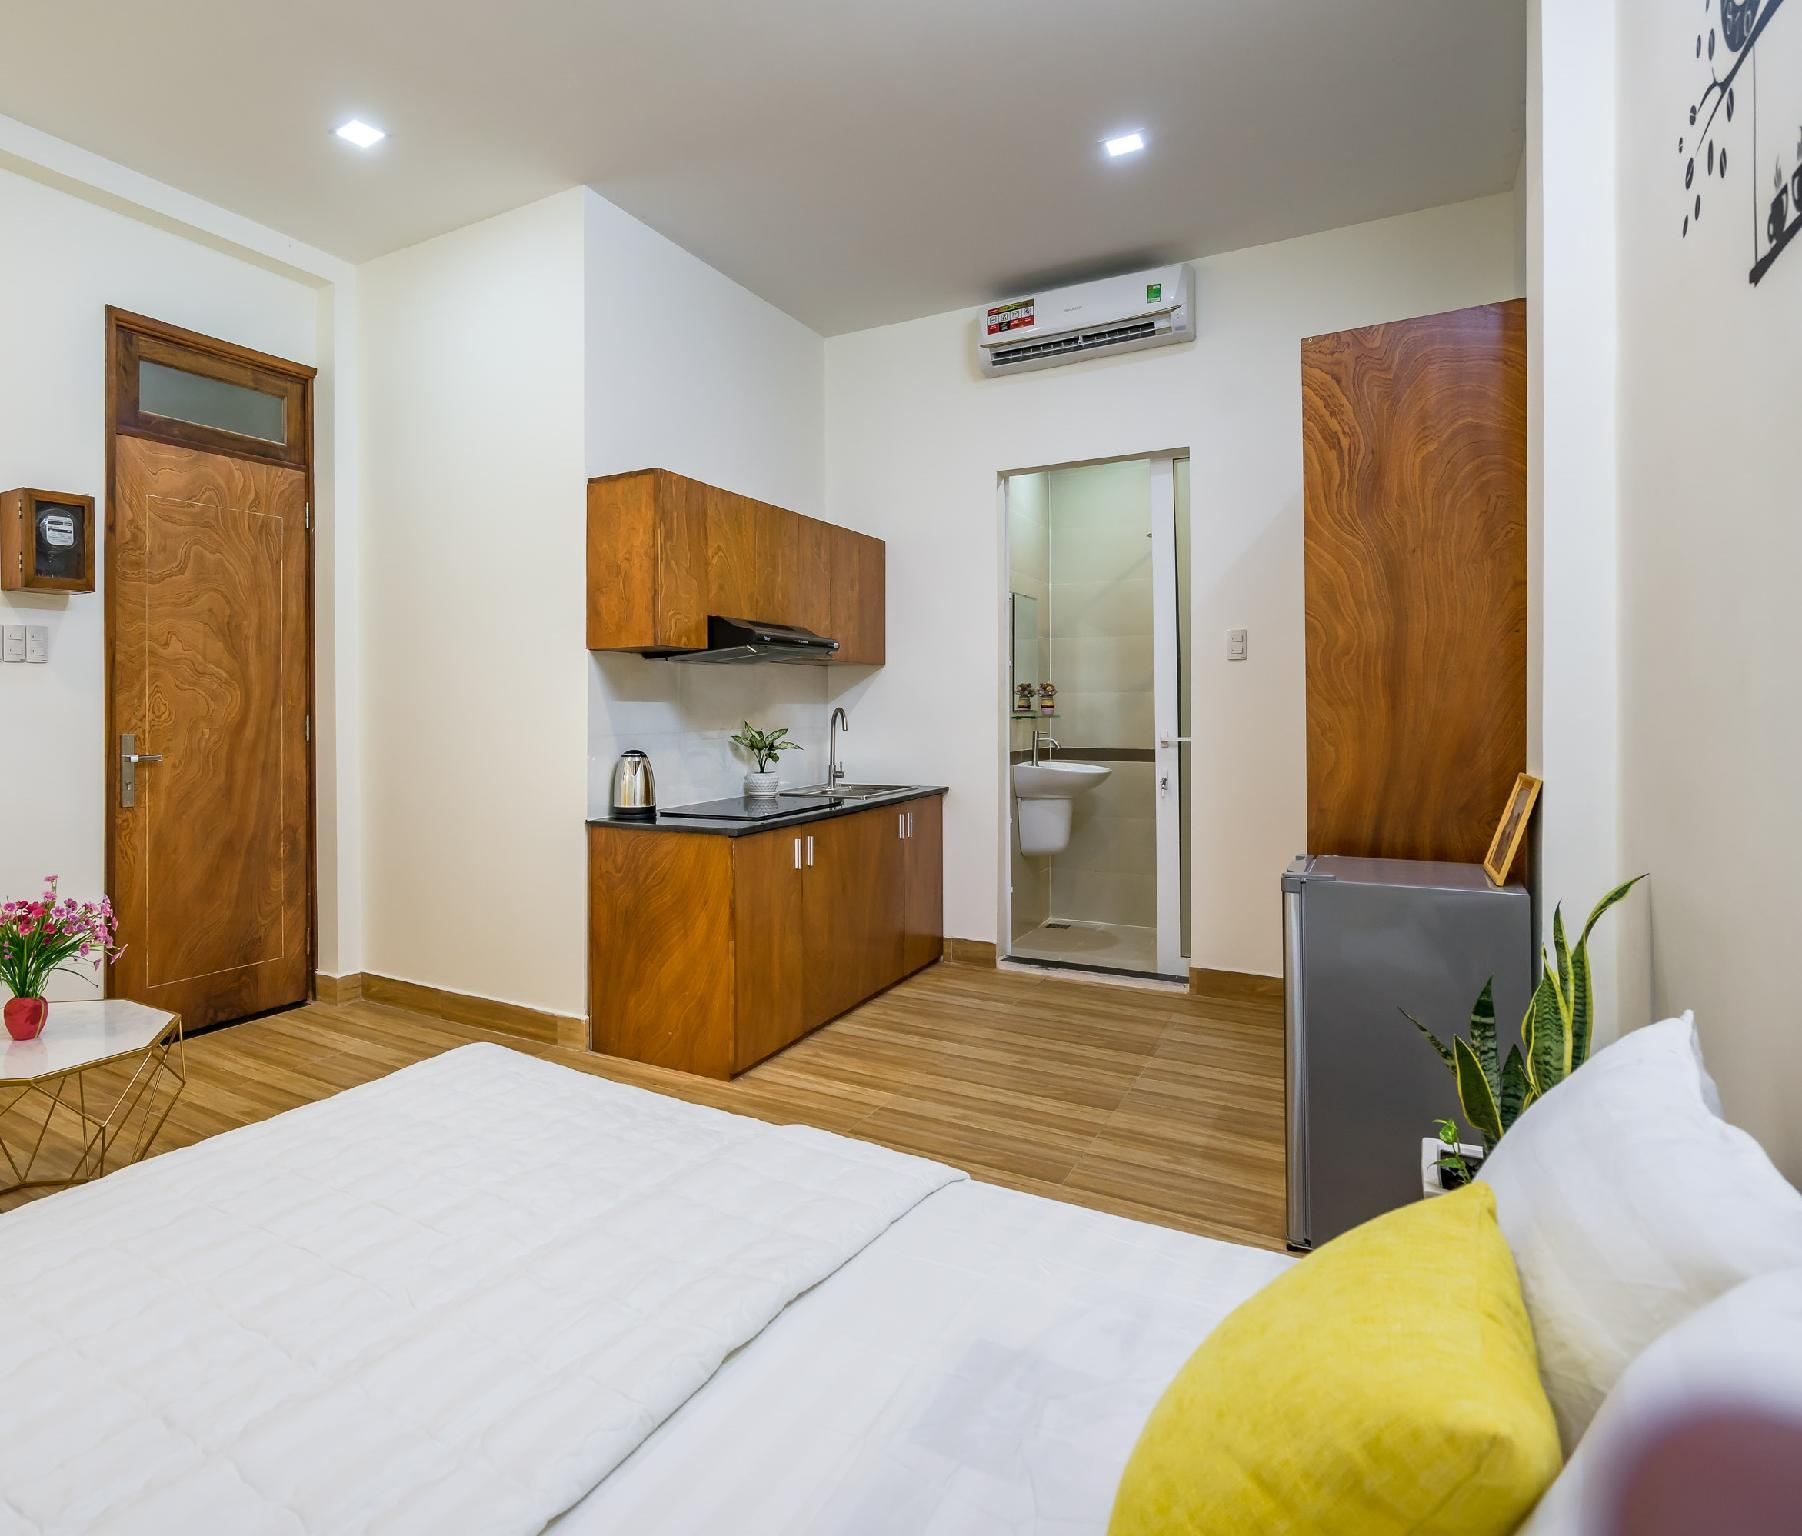 Private Room In An Phu District 2 With Kitchen 304